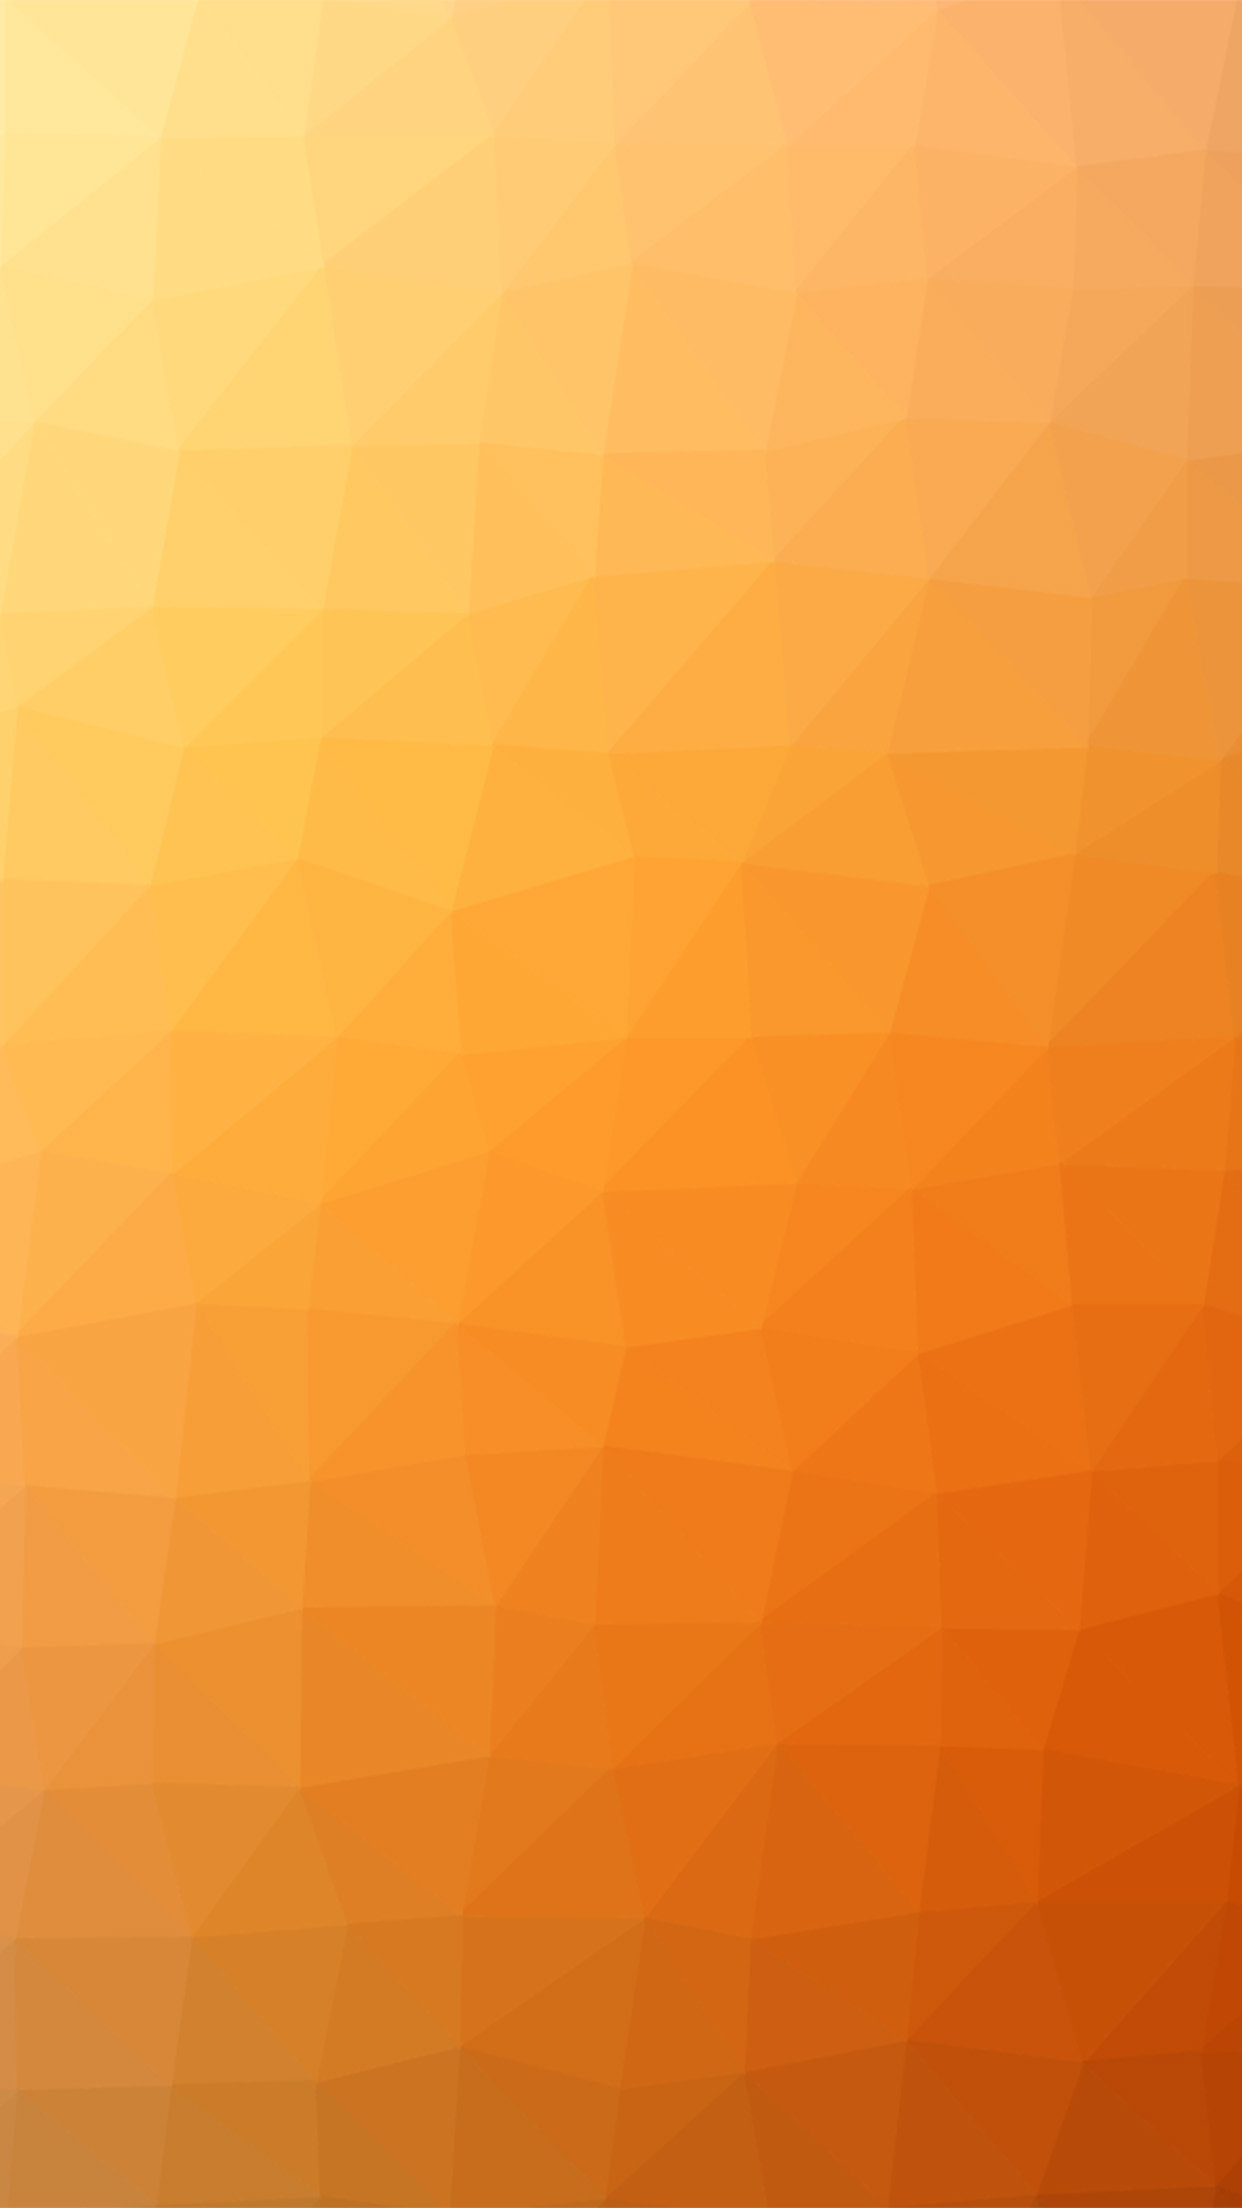 Orange Polygon Art Abstract Pattern Android wallpaper